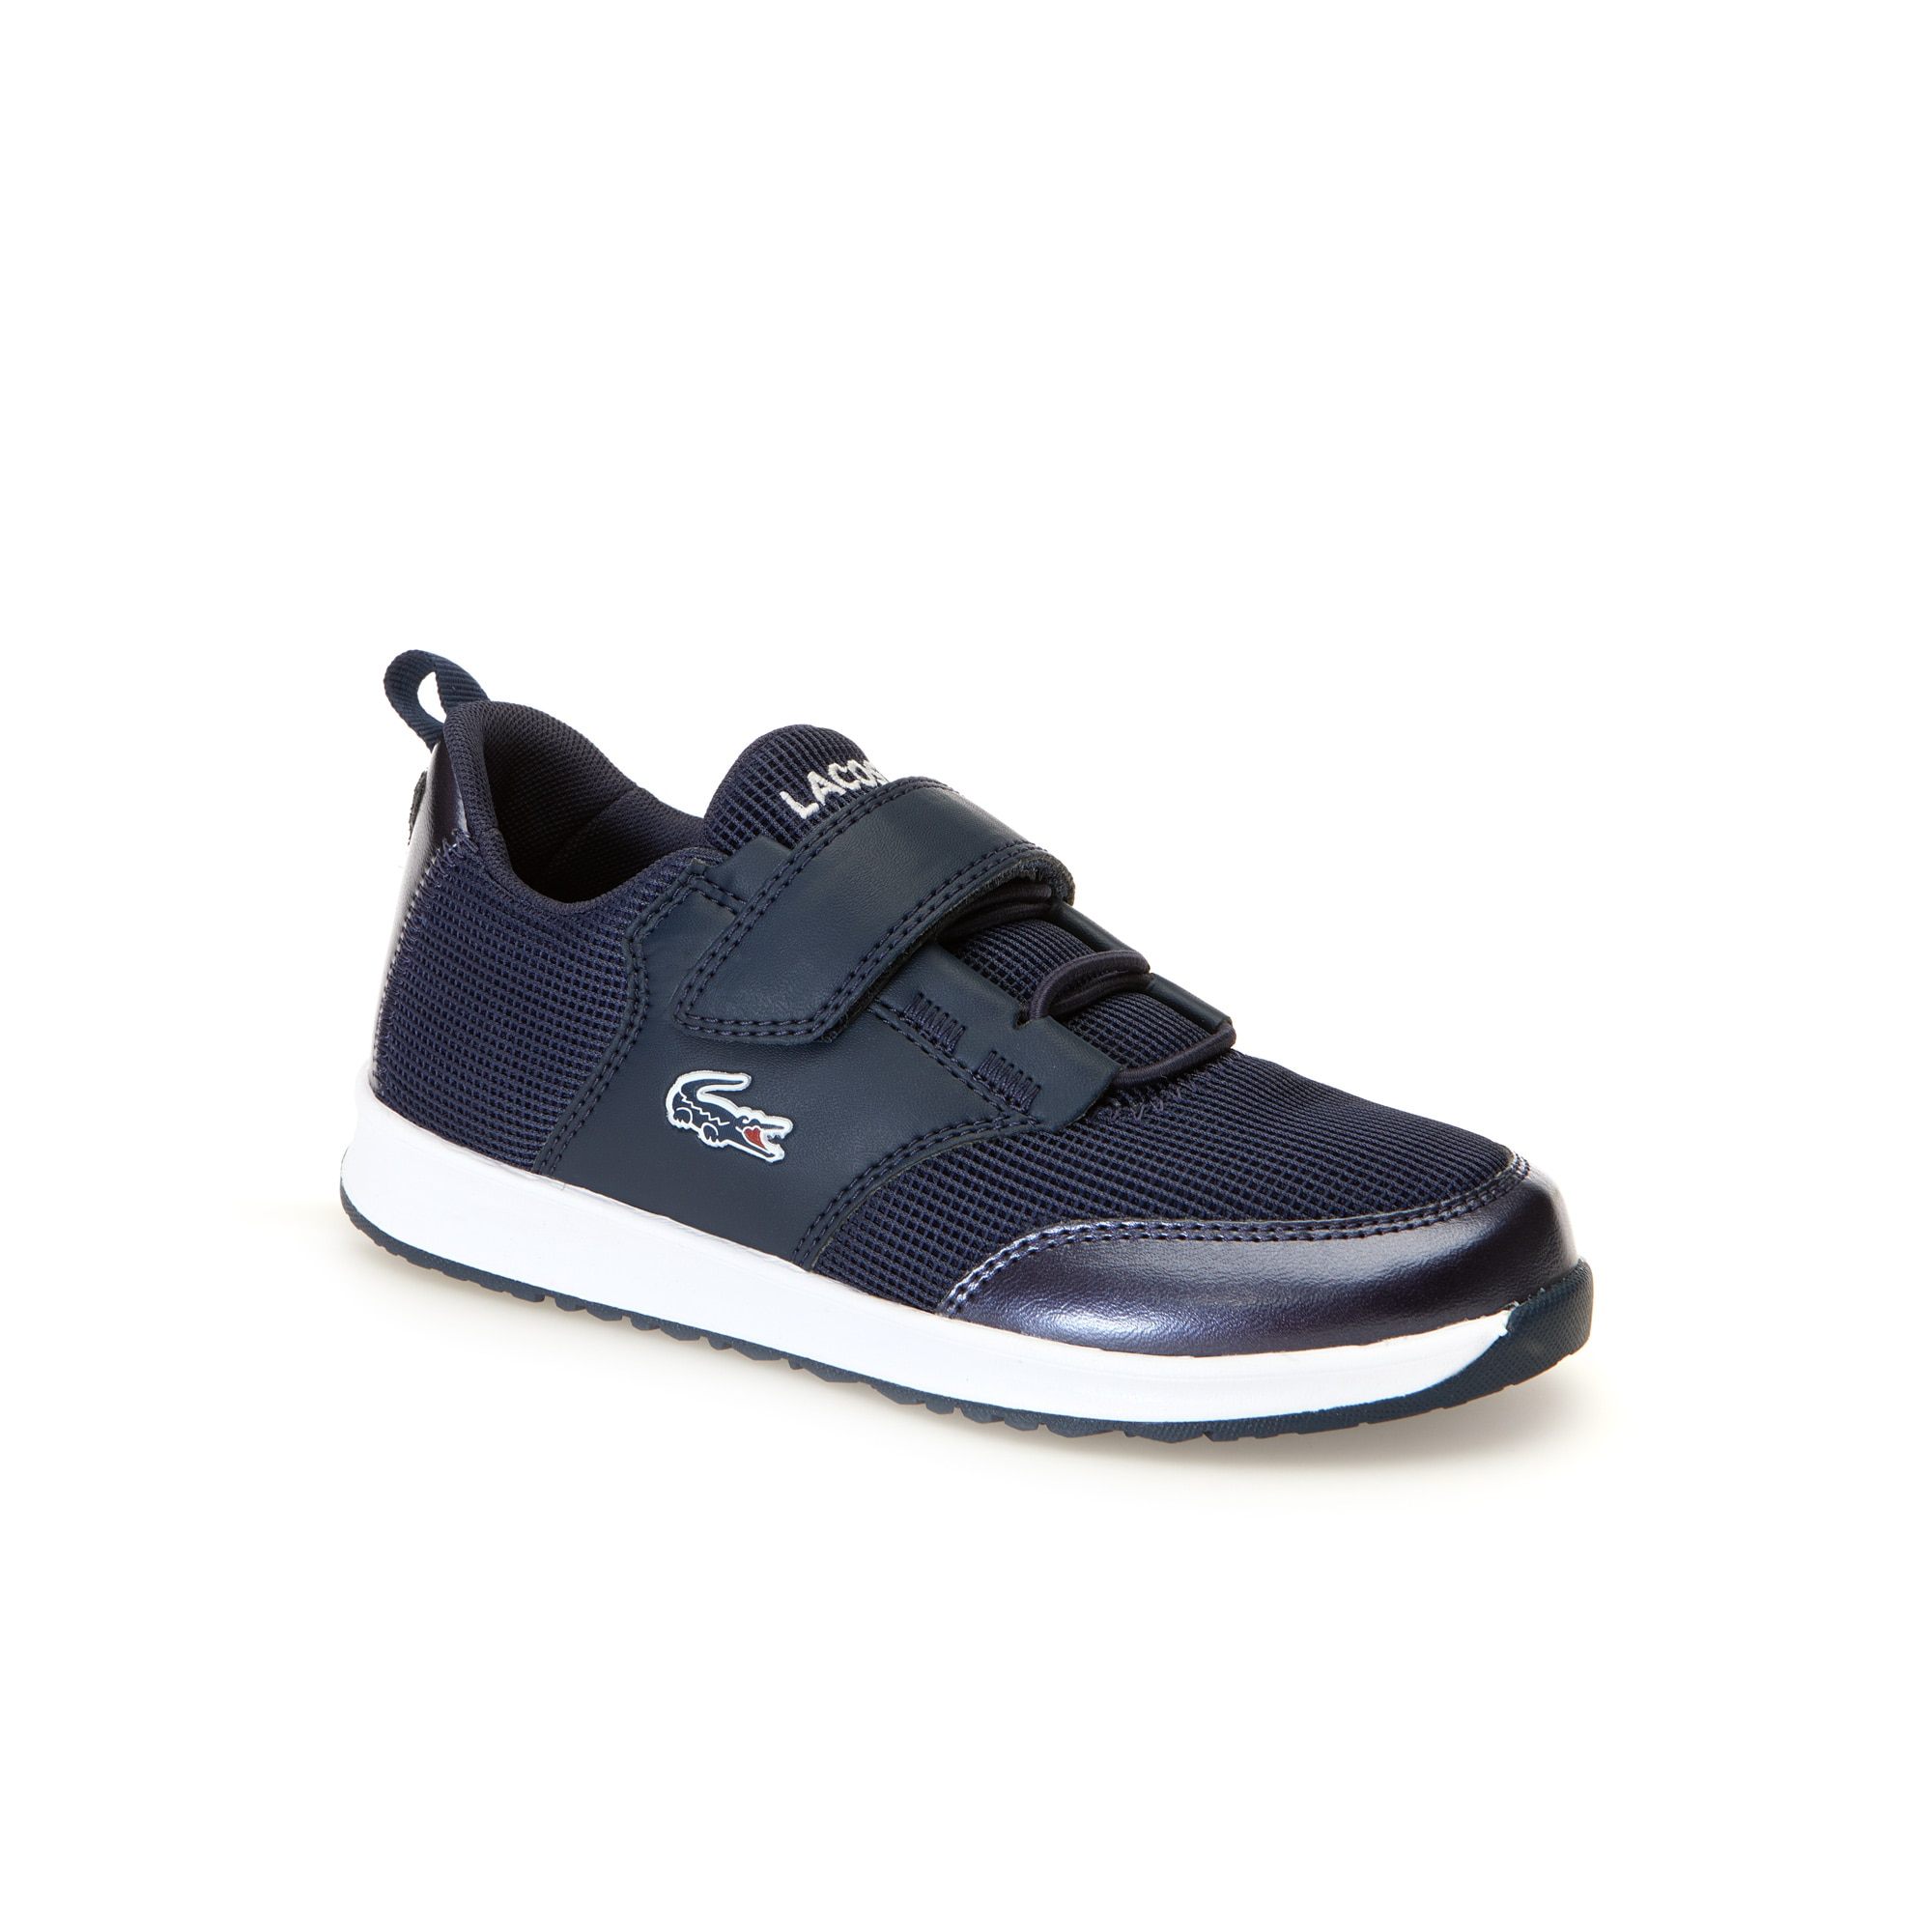 Children's L.ight Metallic Textile and Synthetic Trainers